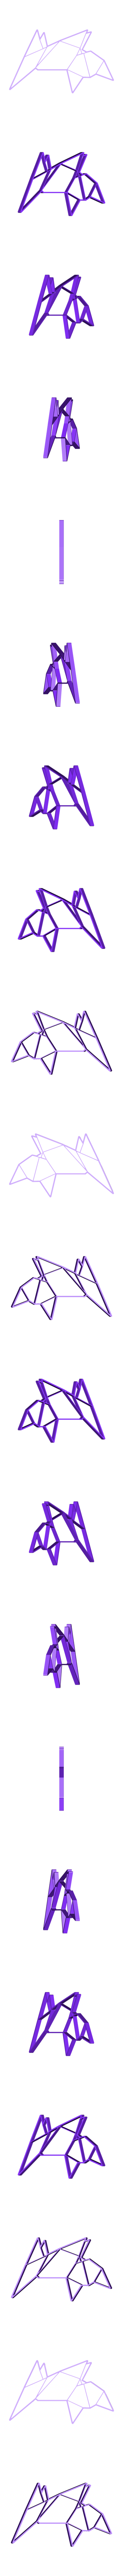 customized_origami_cat.stl Download free STL file Customizable Origami Cat • 3D printing model, MightyNozzle